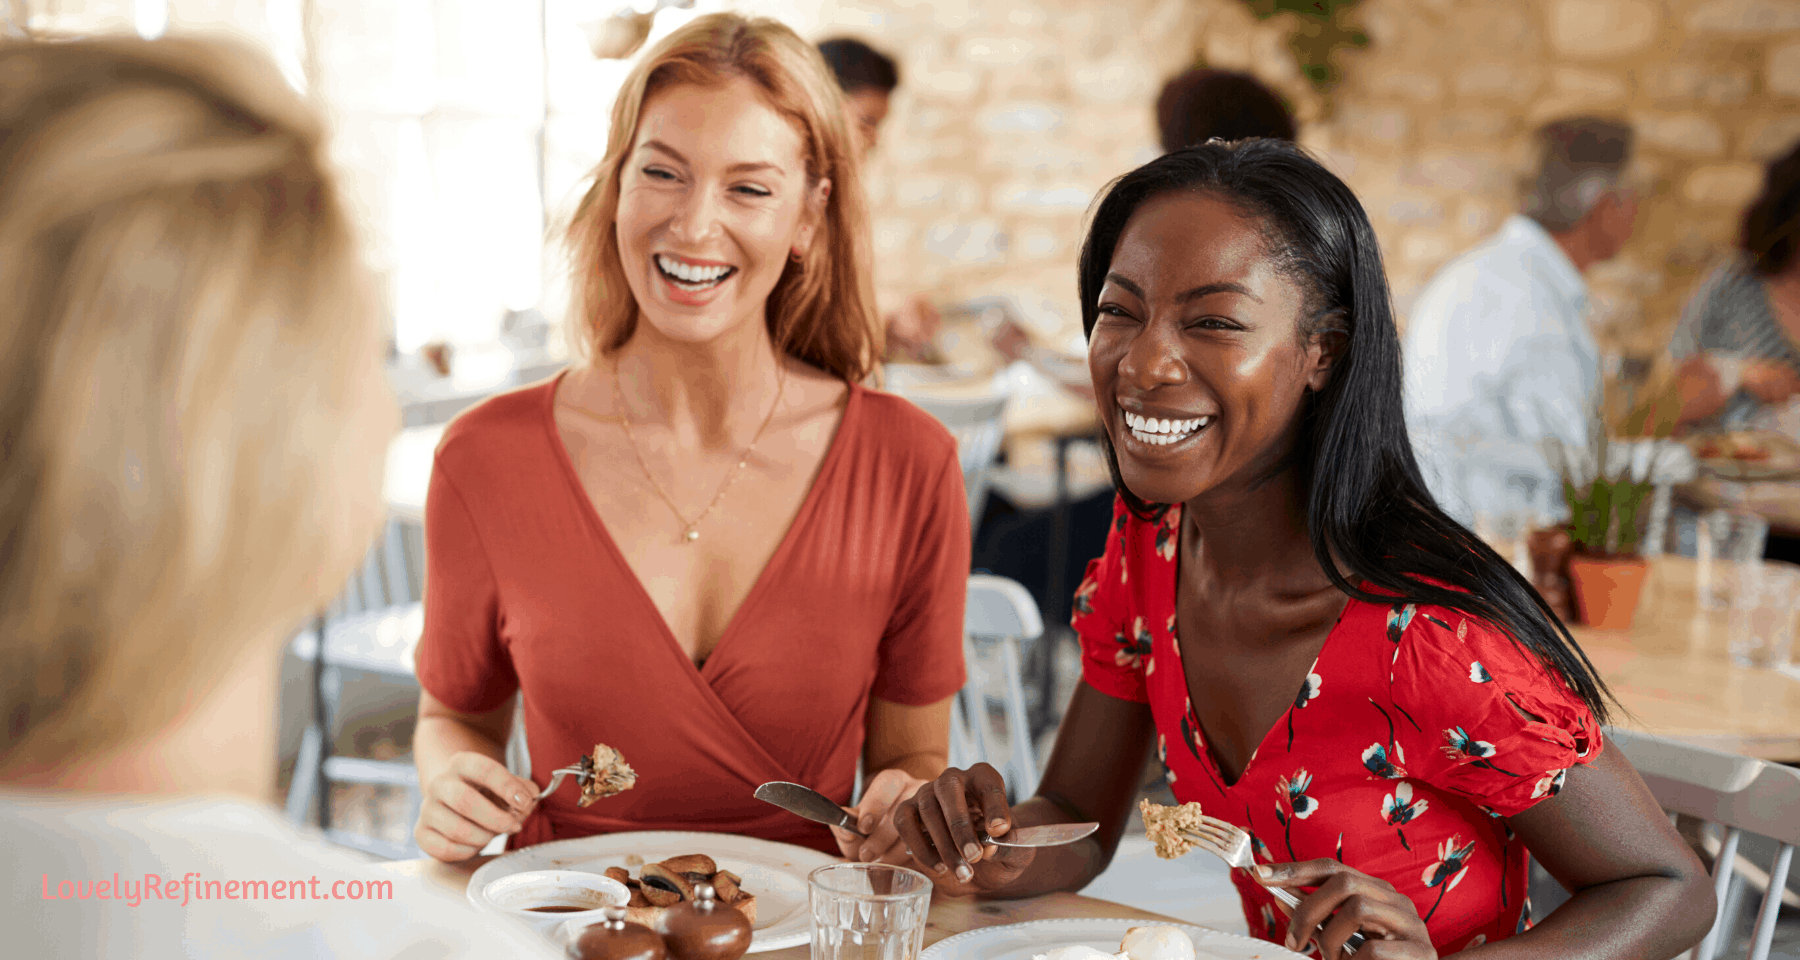 8 Best Gifts For Foodies 2019